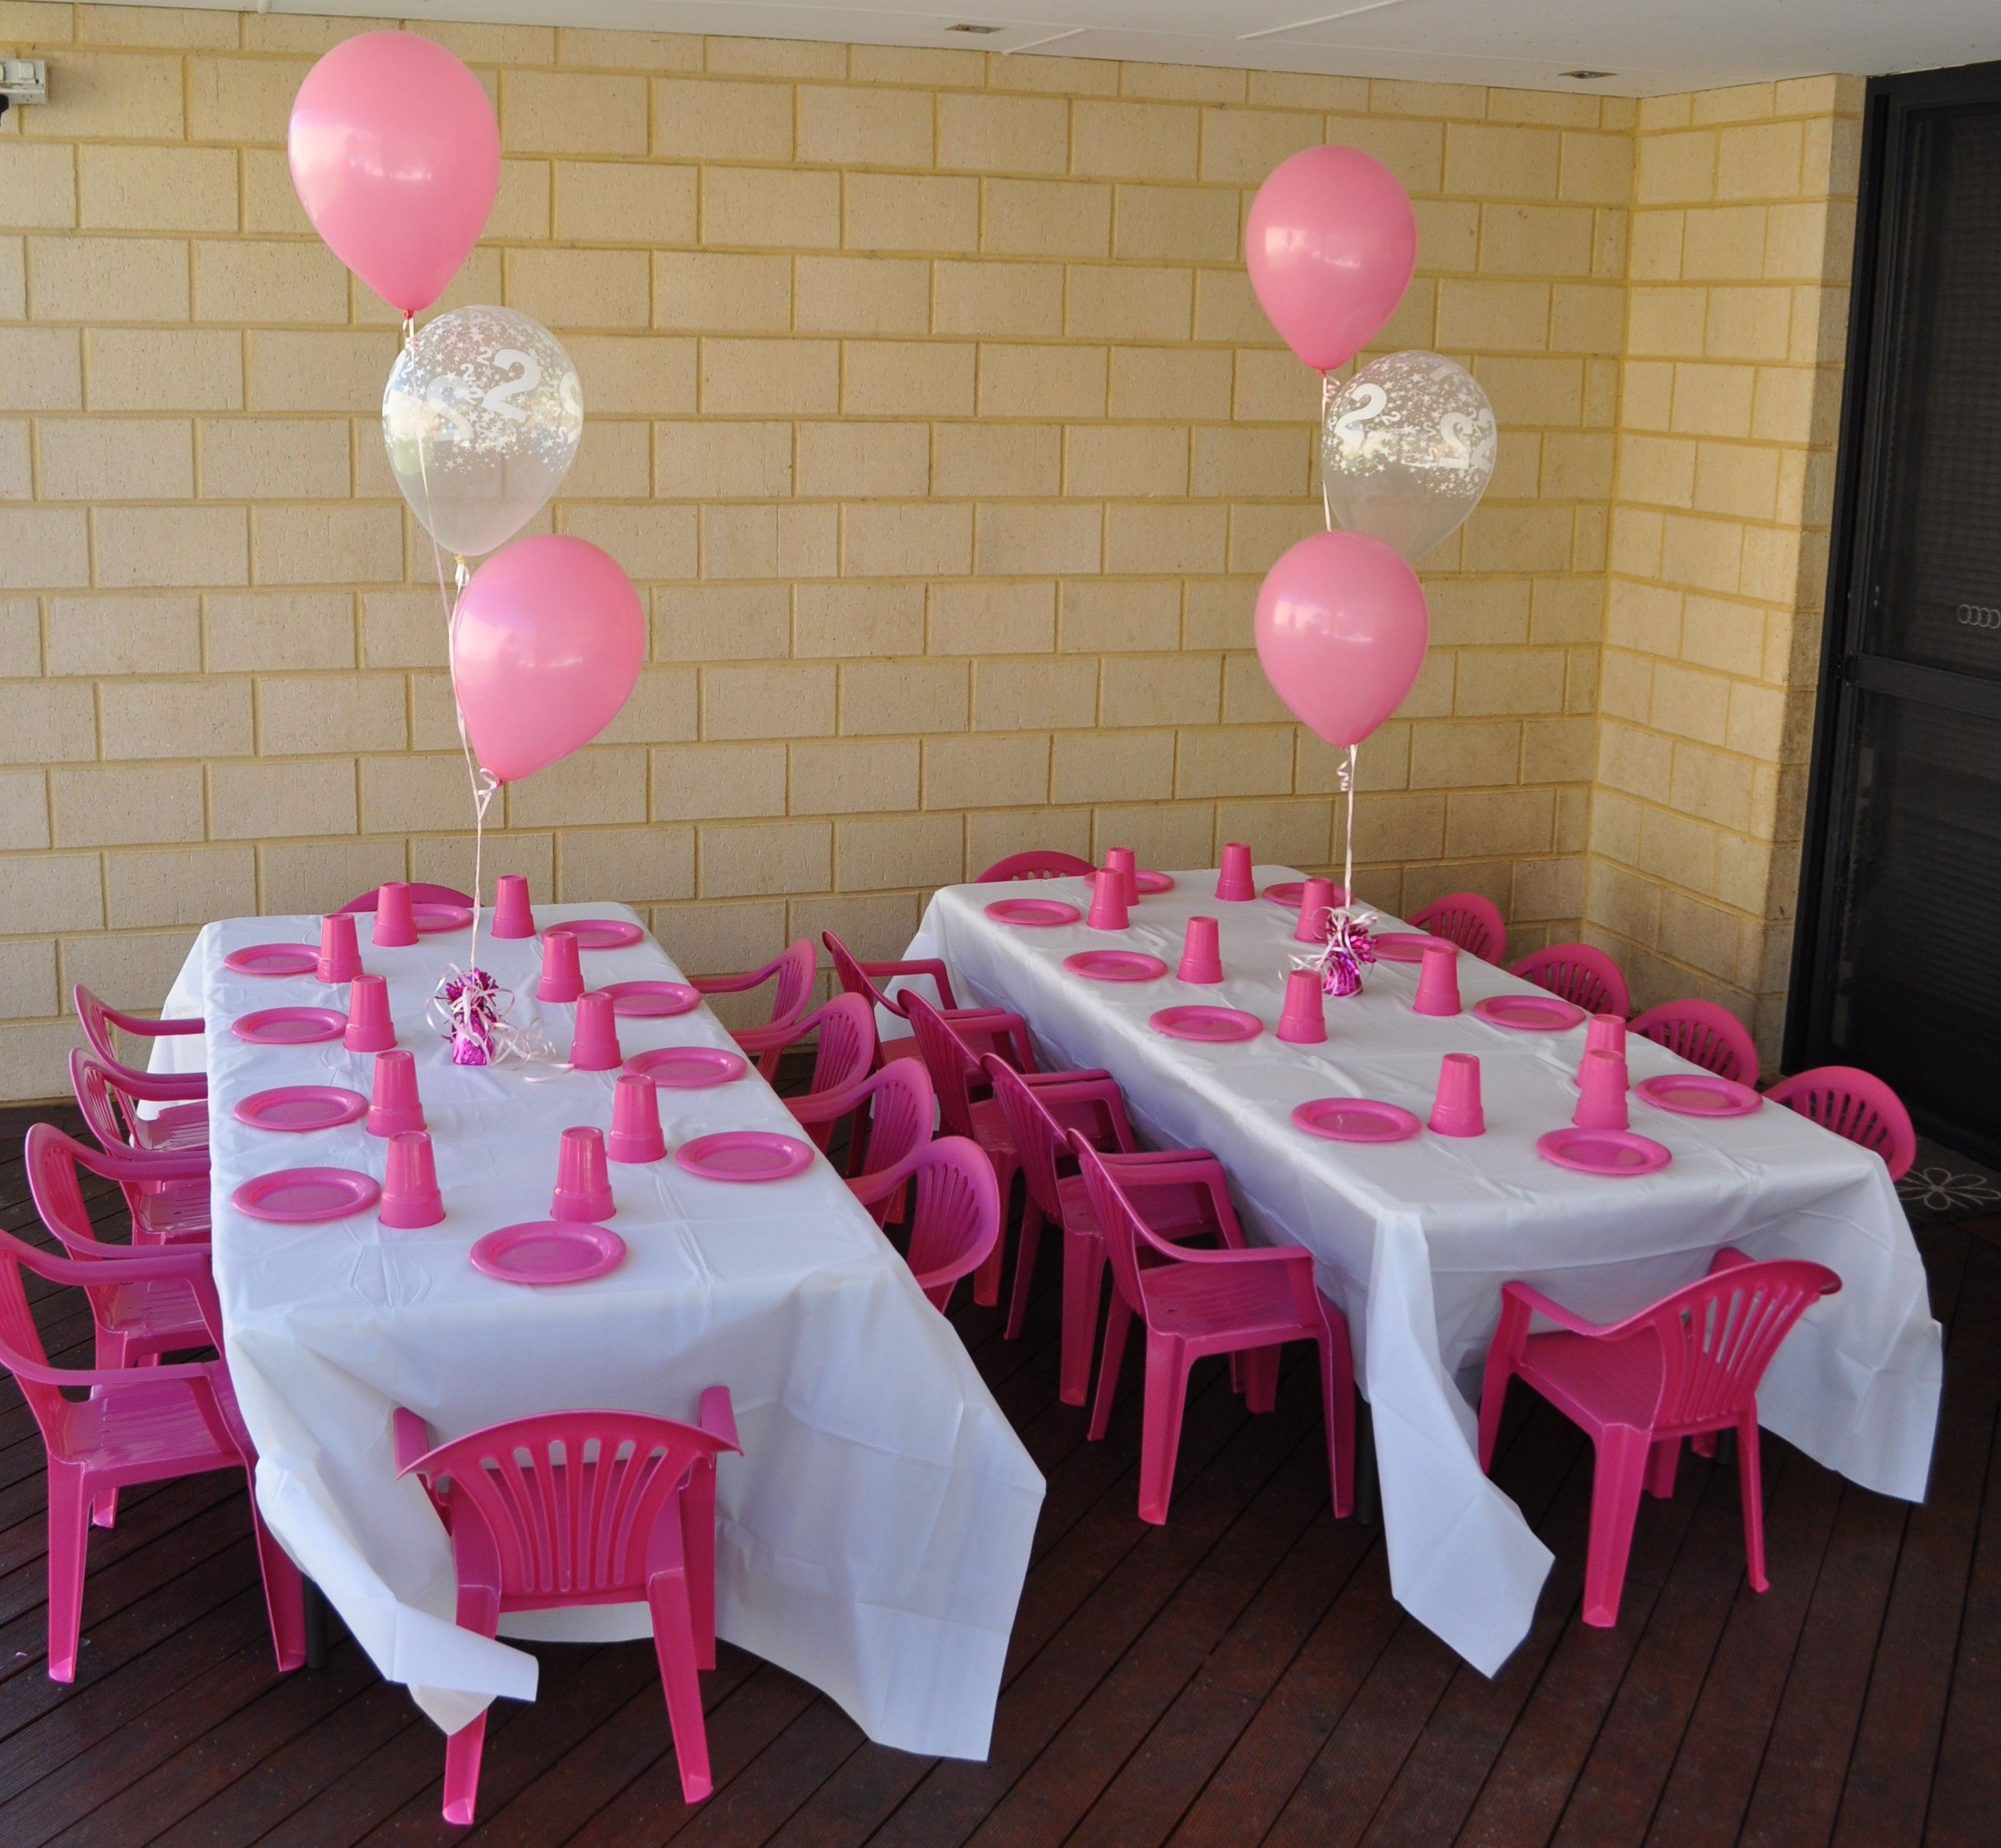 Strange Tables Chairs Perth Kids Party Hire In 2019 Kids Party Caraccident5 Cool Chair Designs And Ideas Caraccident5Info